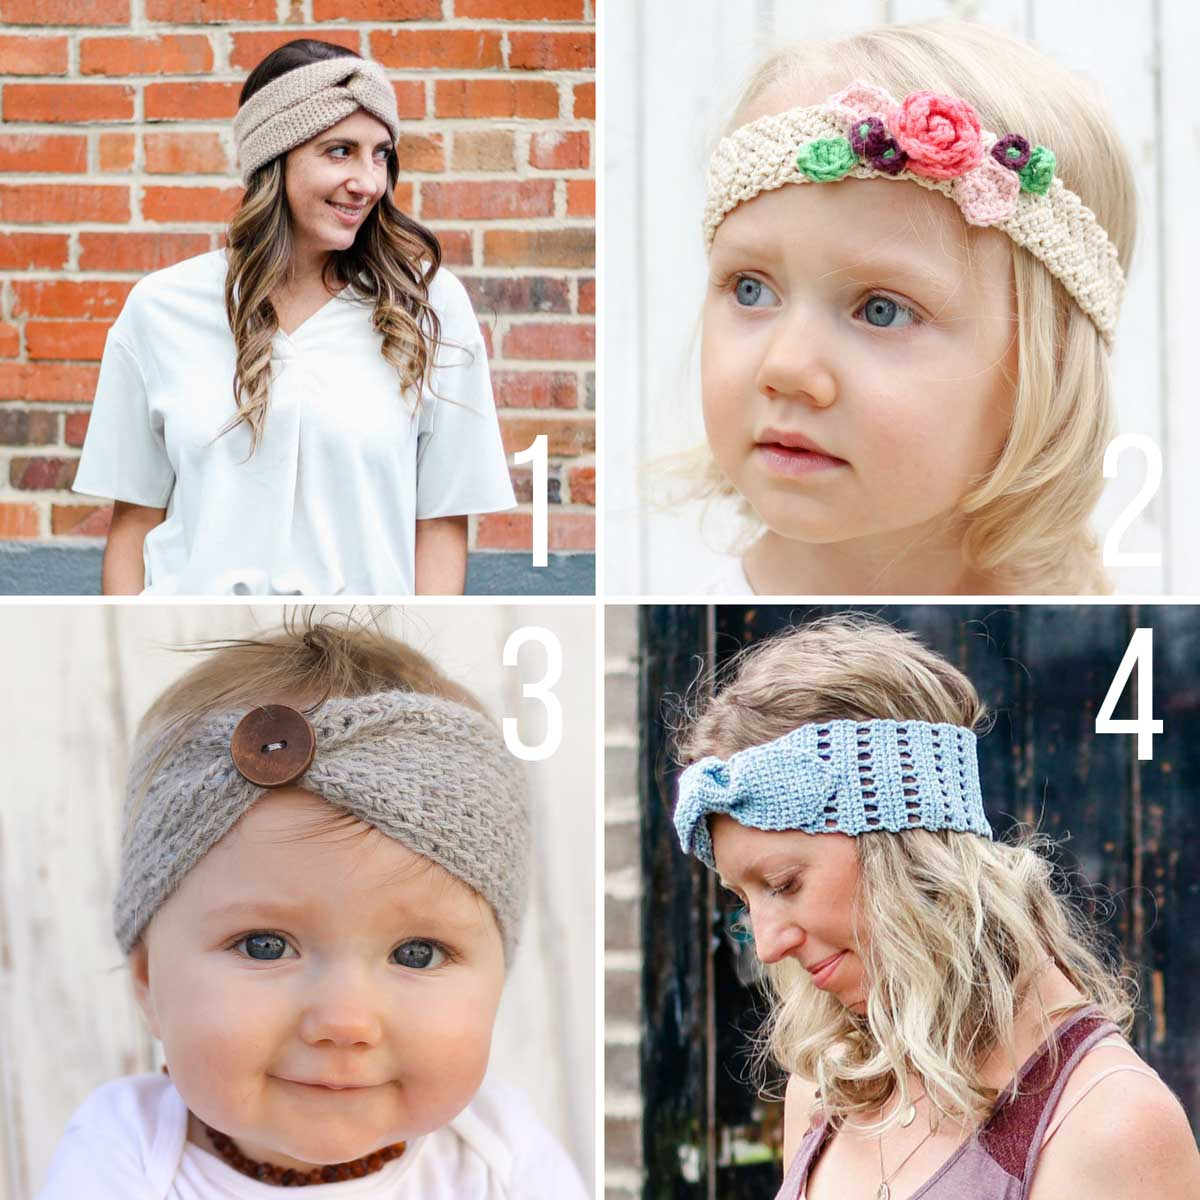 Free crochet patterns for headbands. Wear them for every season!